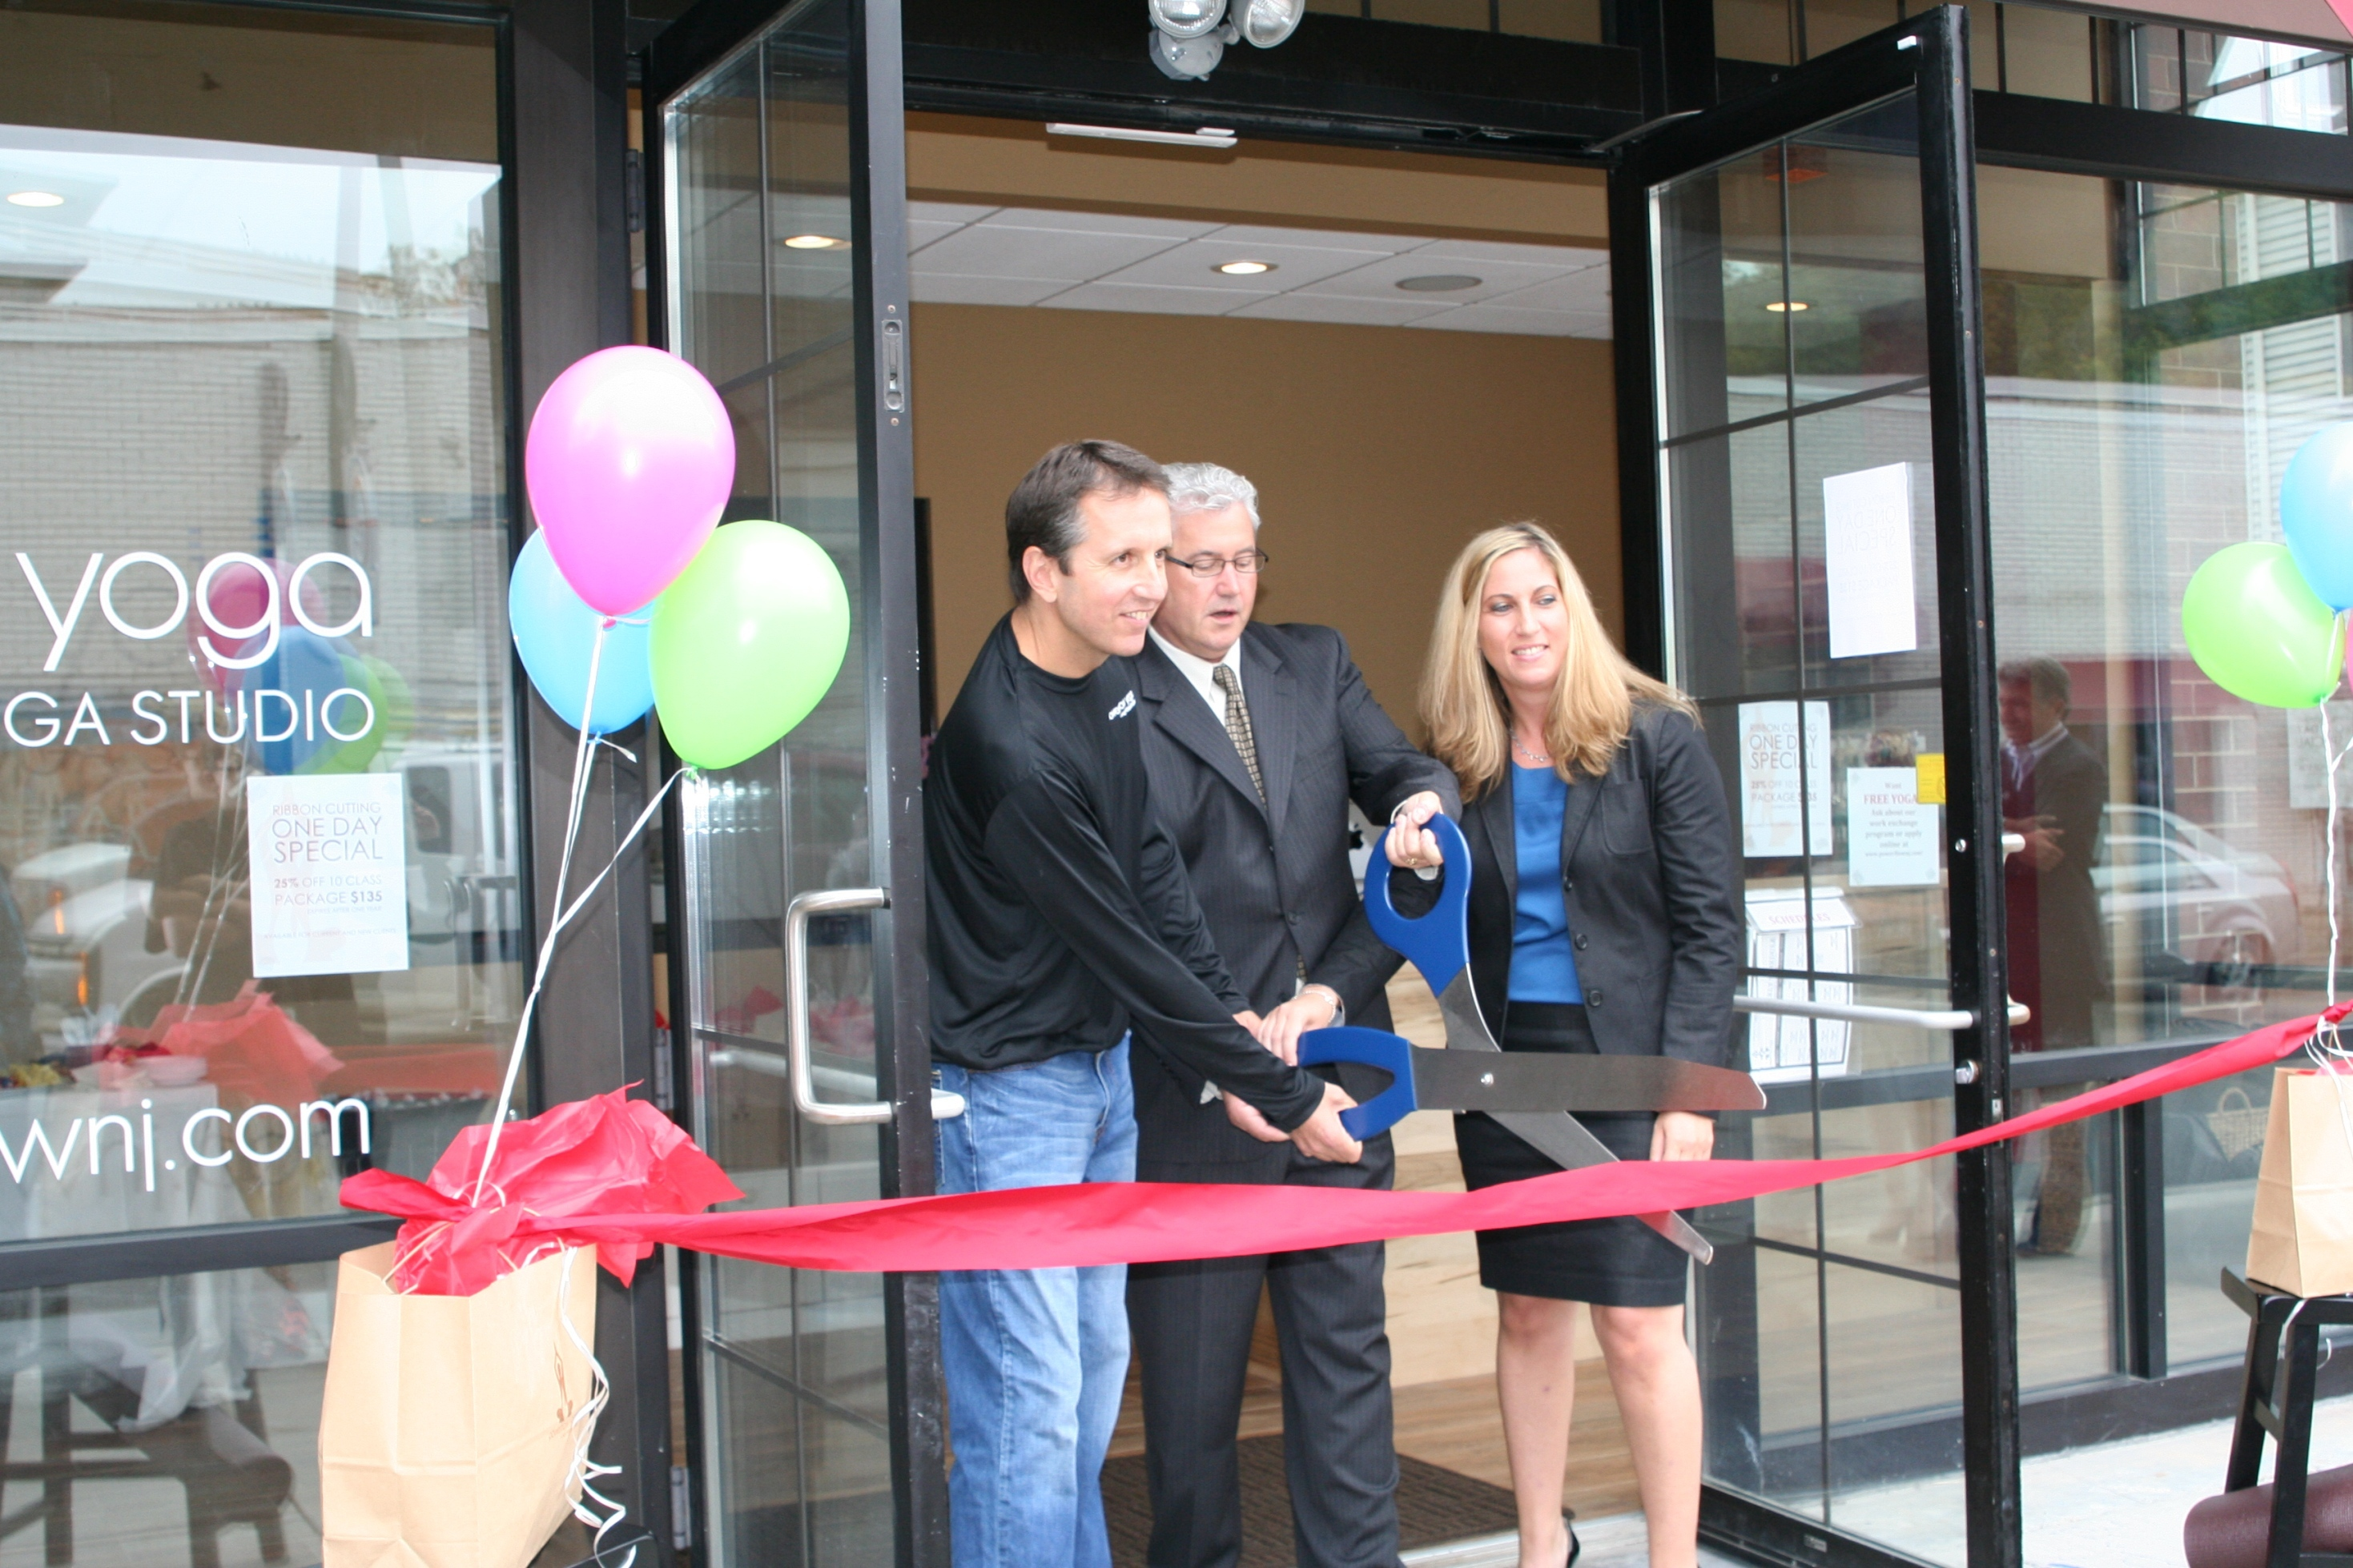 fa79b14f9632c0d76630_powerflow_yoga_ribbon_cutting-a.jpg